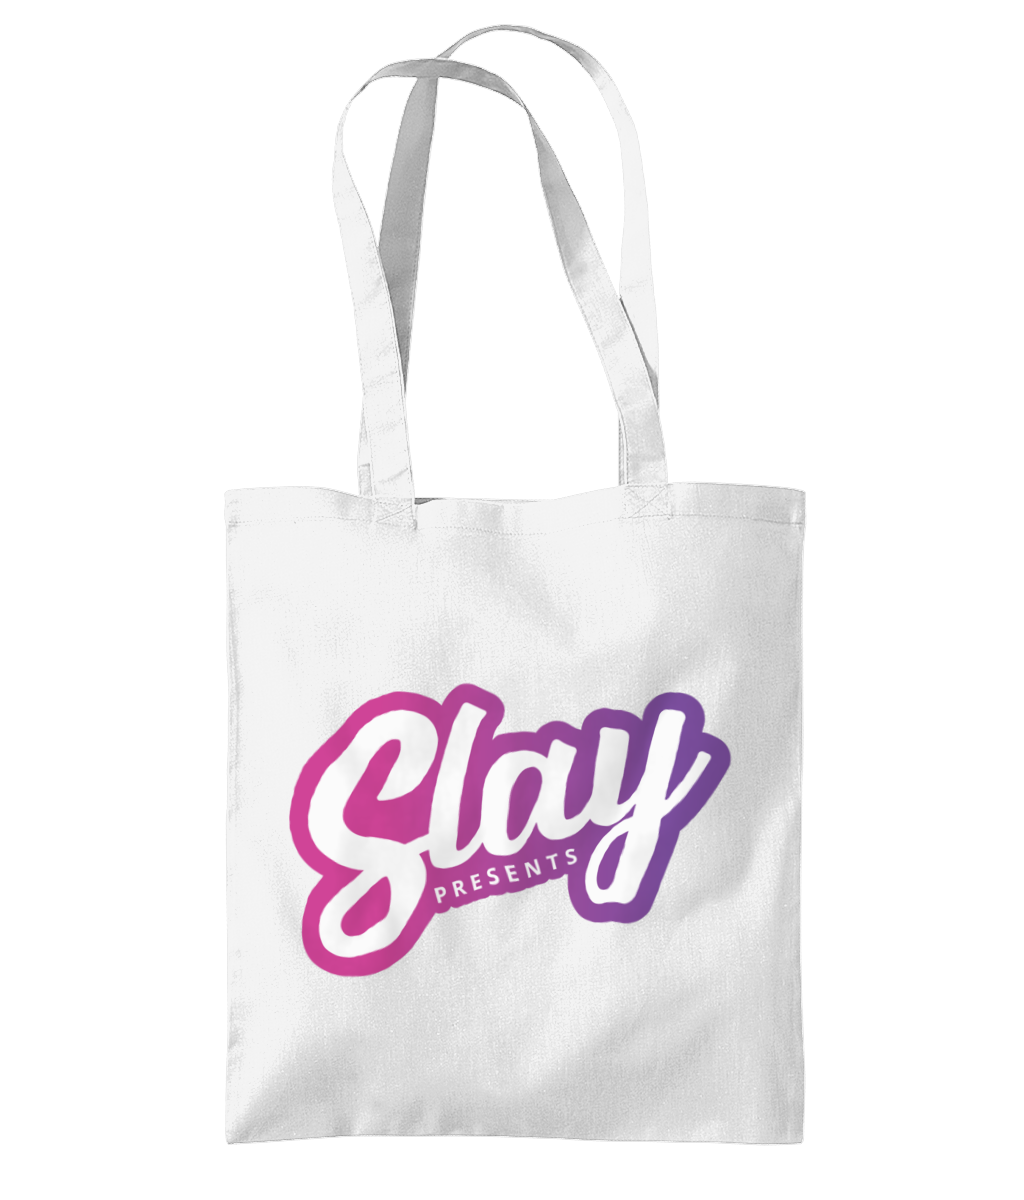 Slay! Presents Tote Bag - SNATCHED